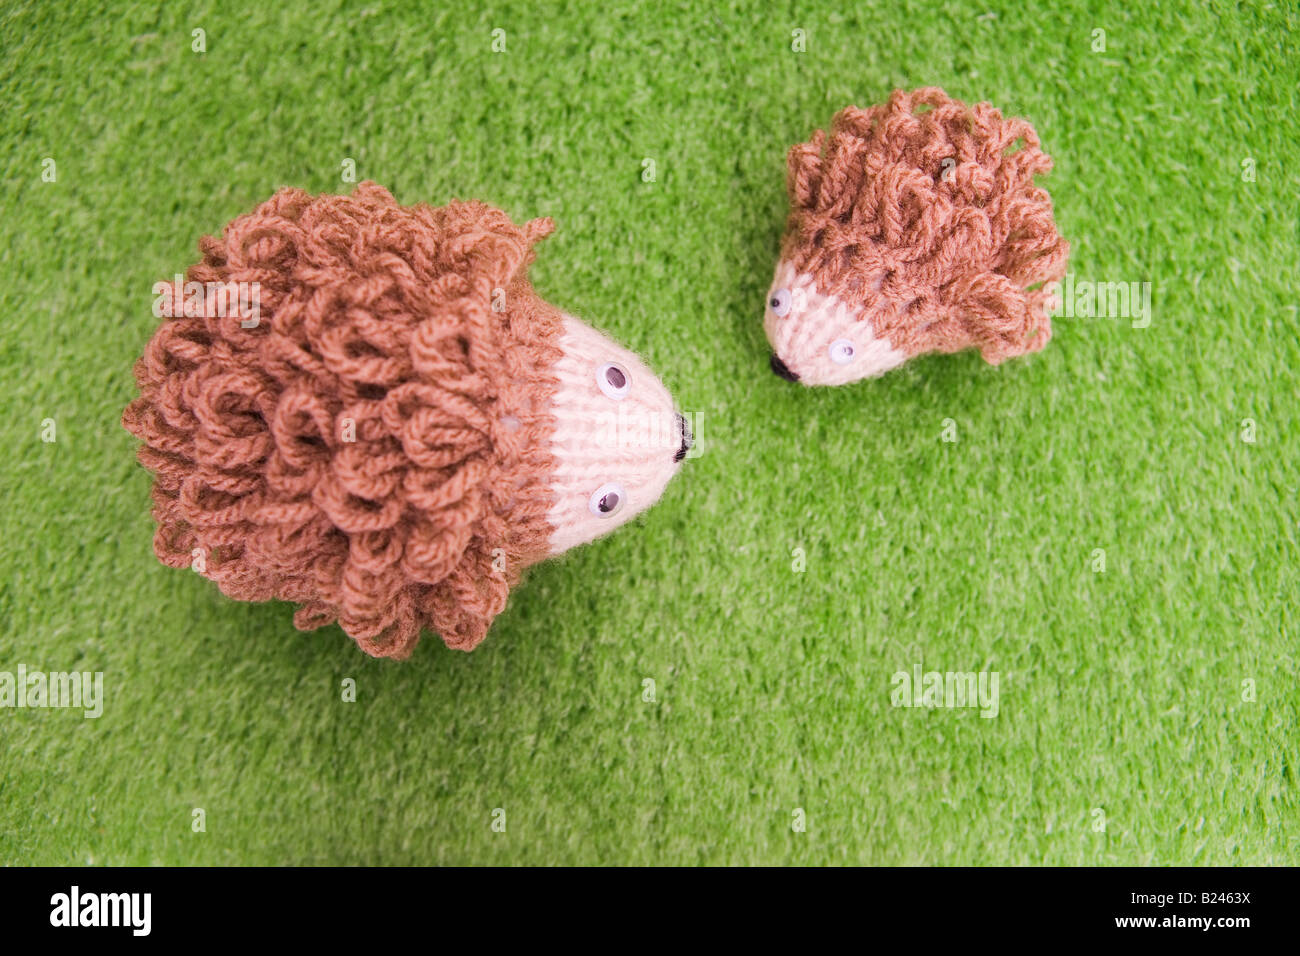 Toy hedgehogs - Stock Image